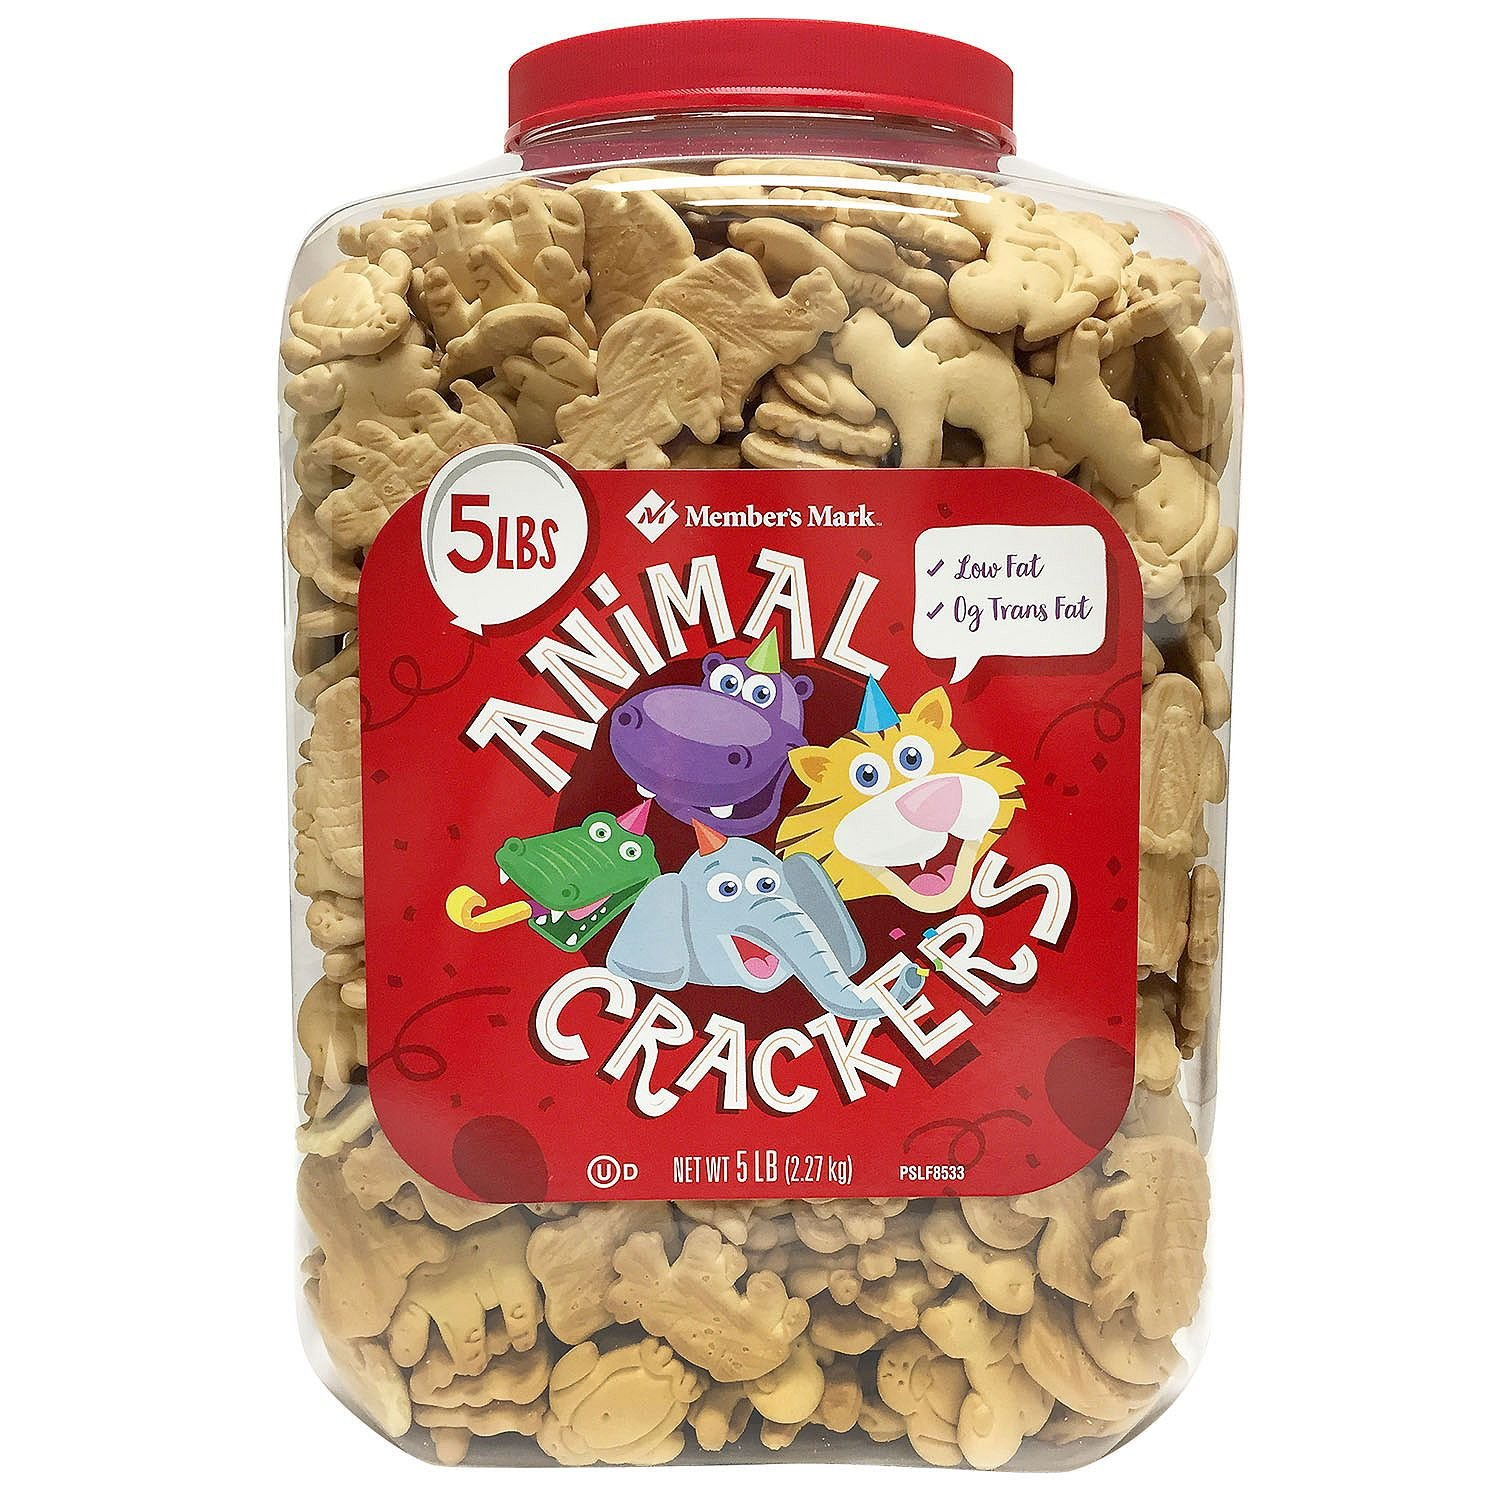 Member's Mark Animal Crackers 5 lbs. pack 4 of Brand Cheap Ranking TOP12 Sale Venue A1